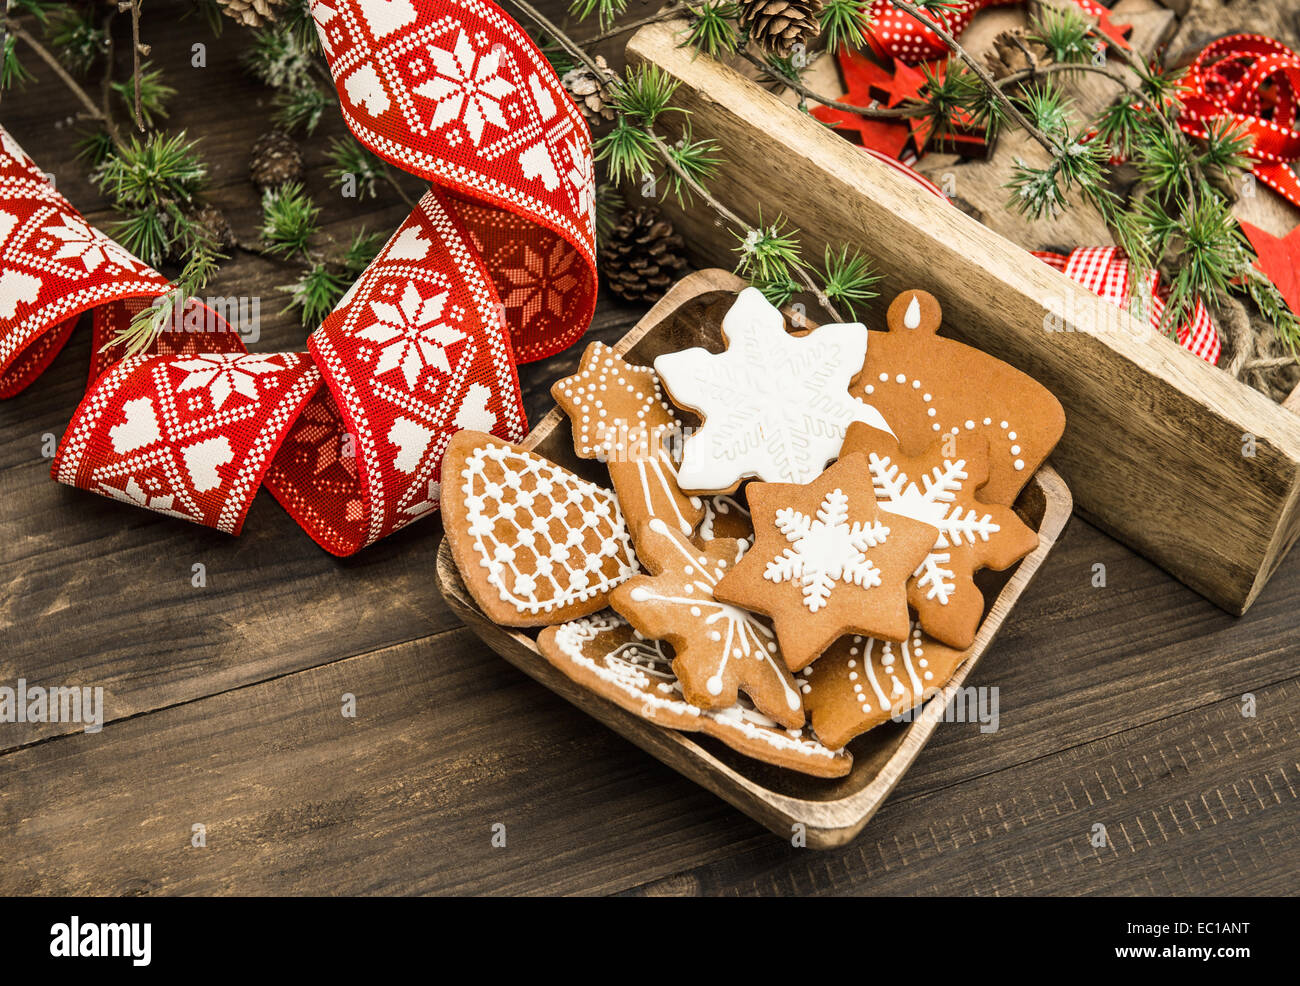 Vintage style ornaments - Stock Photo Christmas Ornaments And Gingerbread Cookies Vintage Style Home Decoration